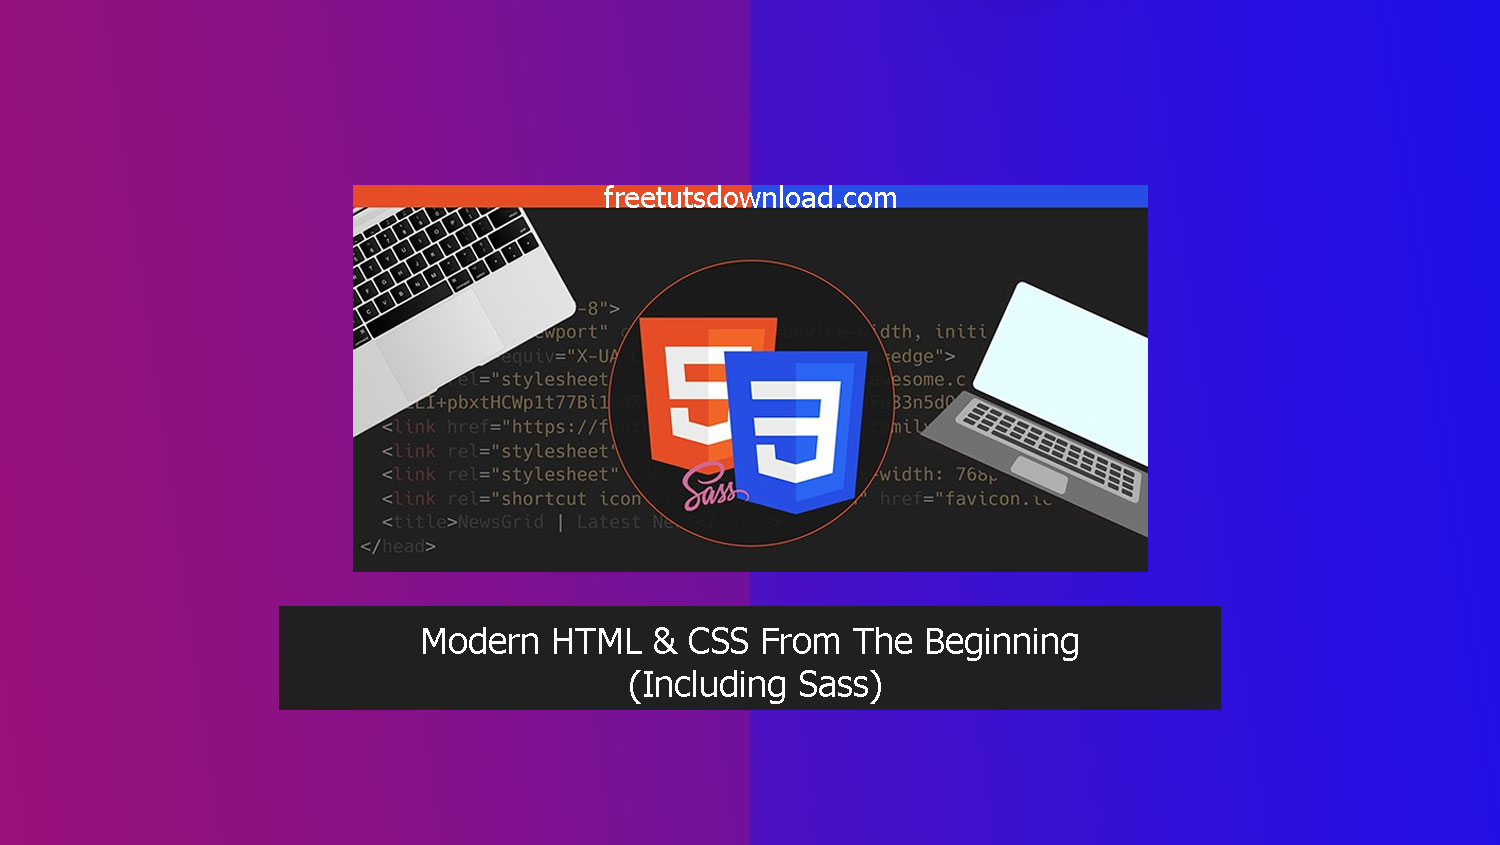 Modern HTML & CSS From The Beginning (Including Sass) free download